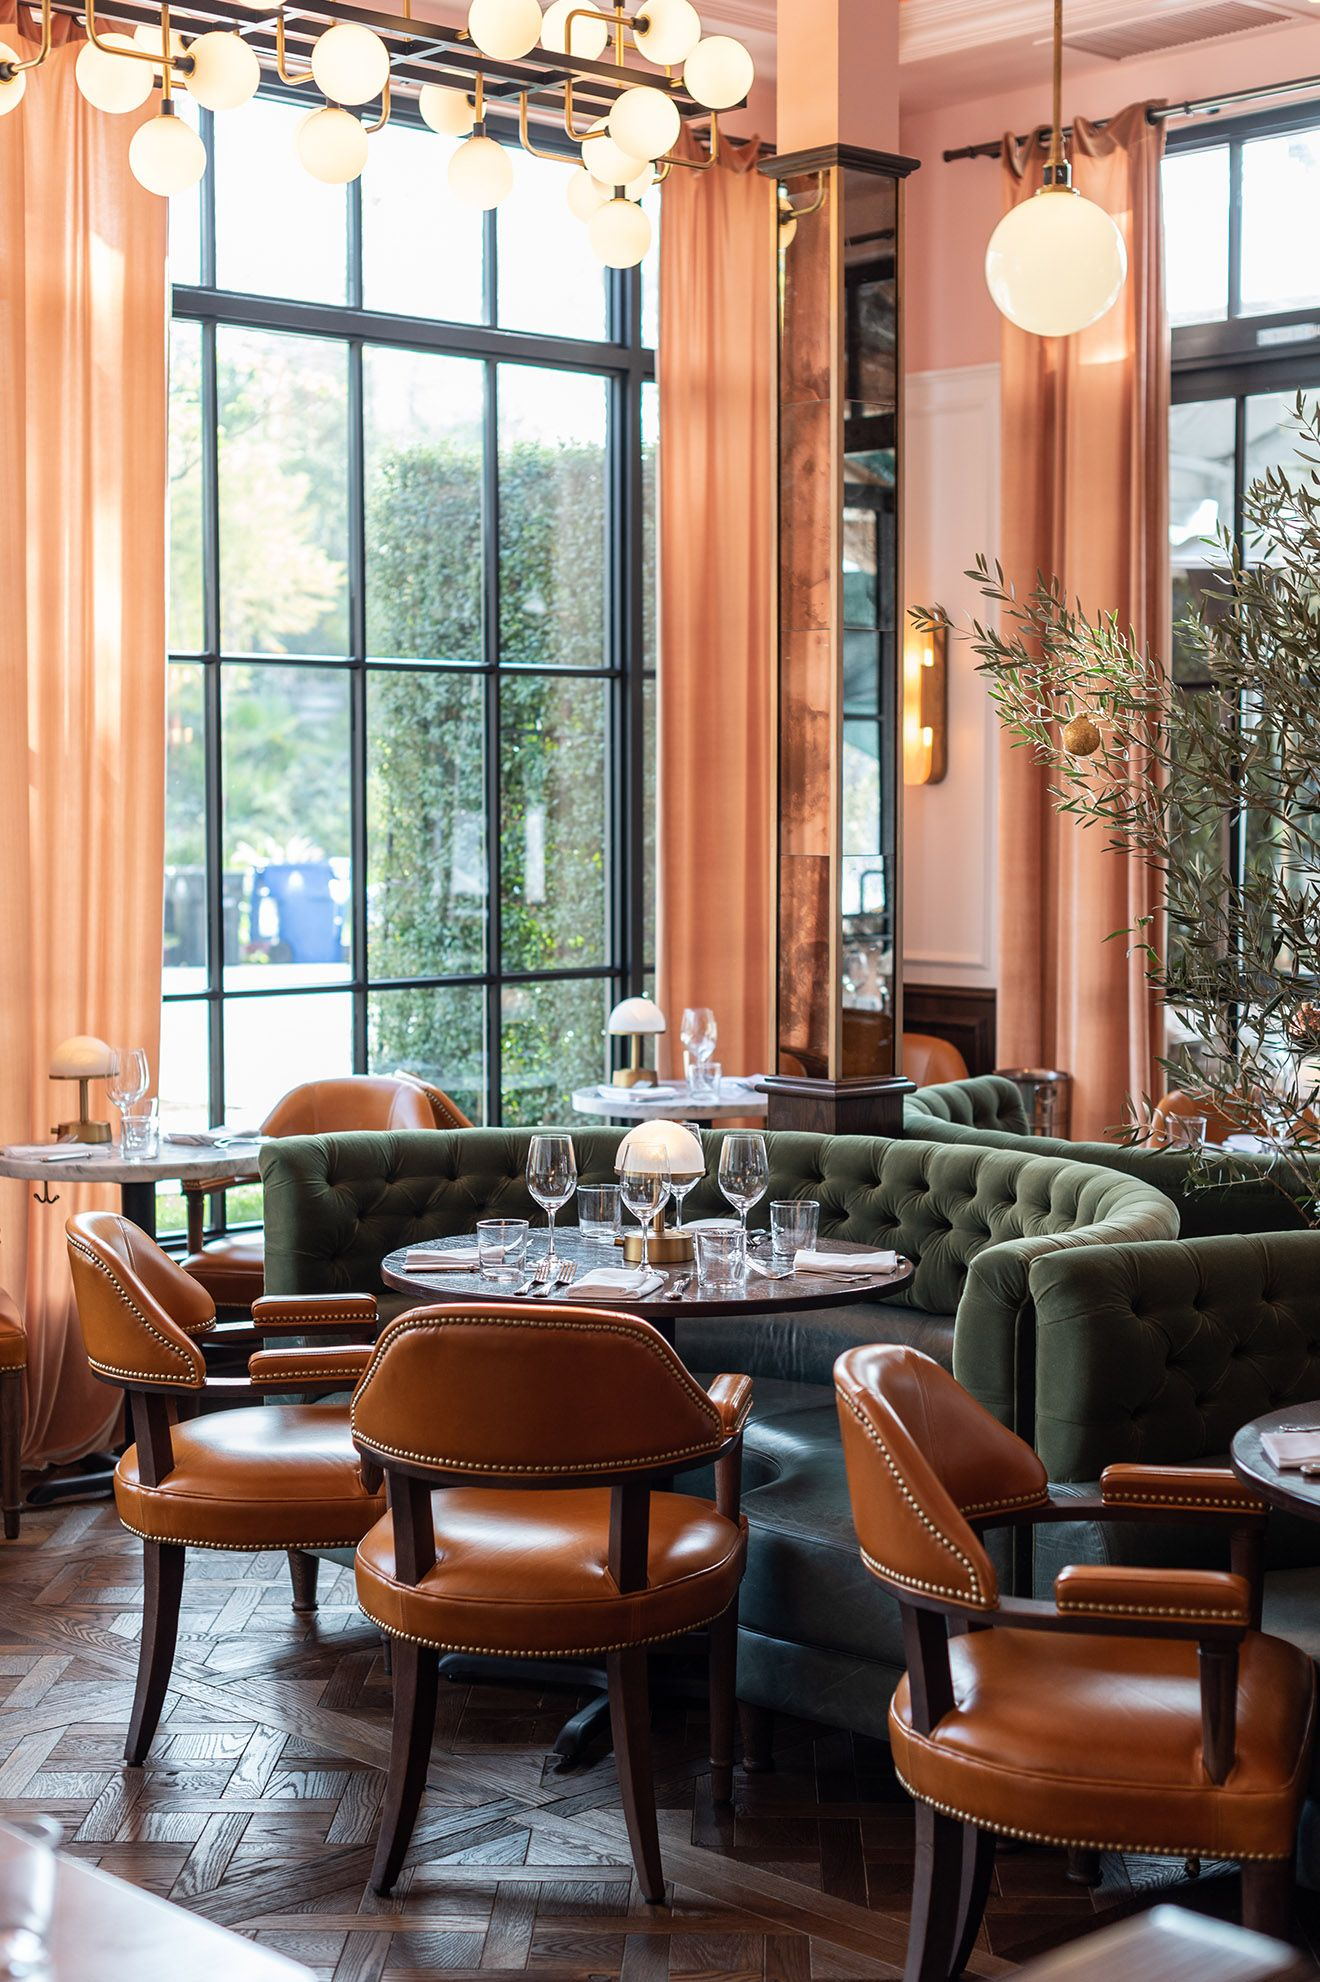 Design studio Fettle has showcases The Draycott; a European-inspired brasserie with a beautiful Californian twist located in Pacific Palisades, Los Angeles by acclaimed restaurateurs Matt and Marisa Hermer. #interiordesign #restaurant #bar